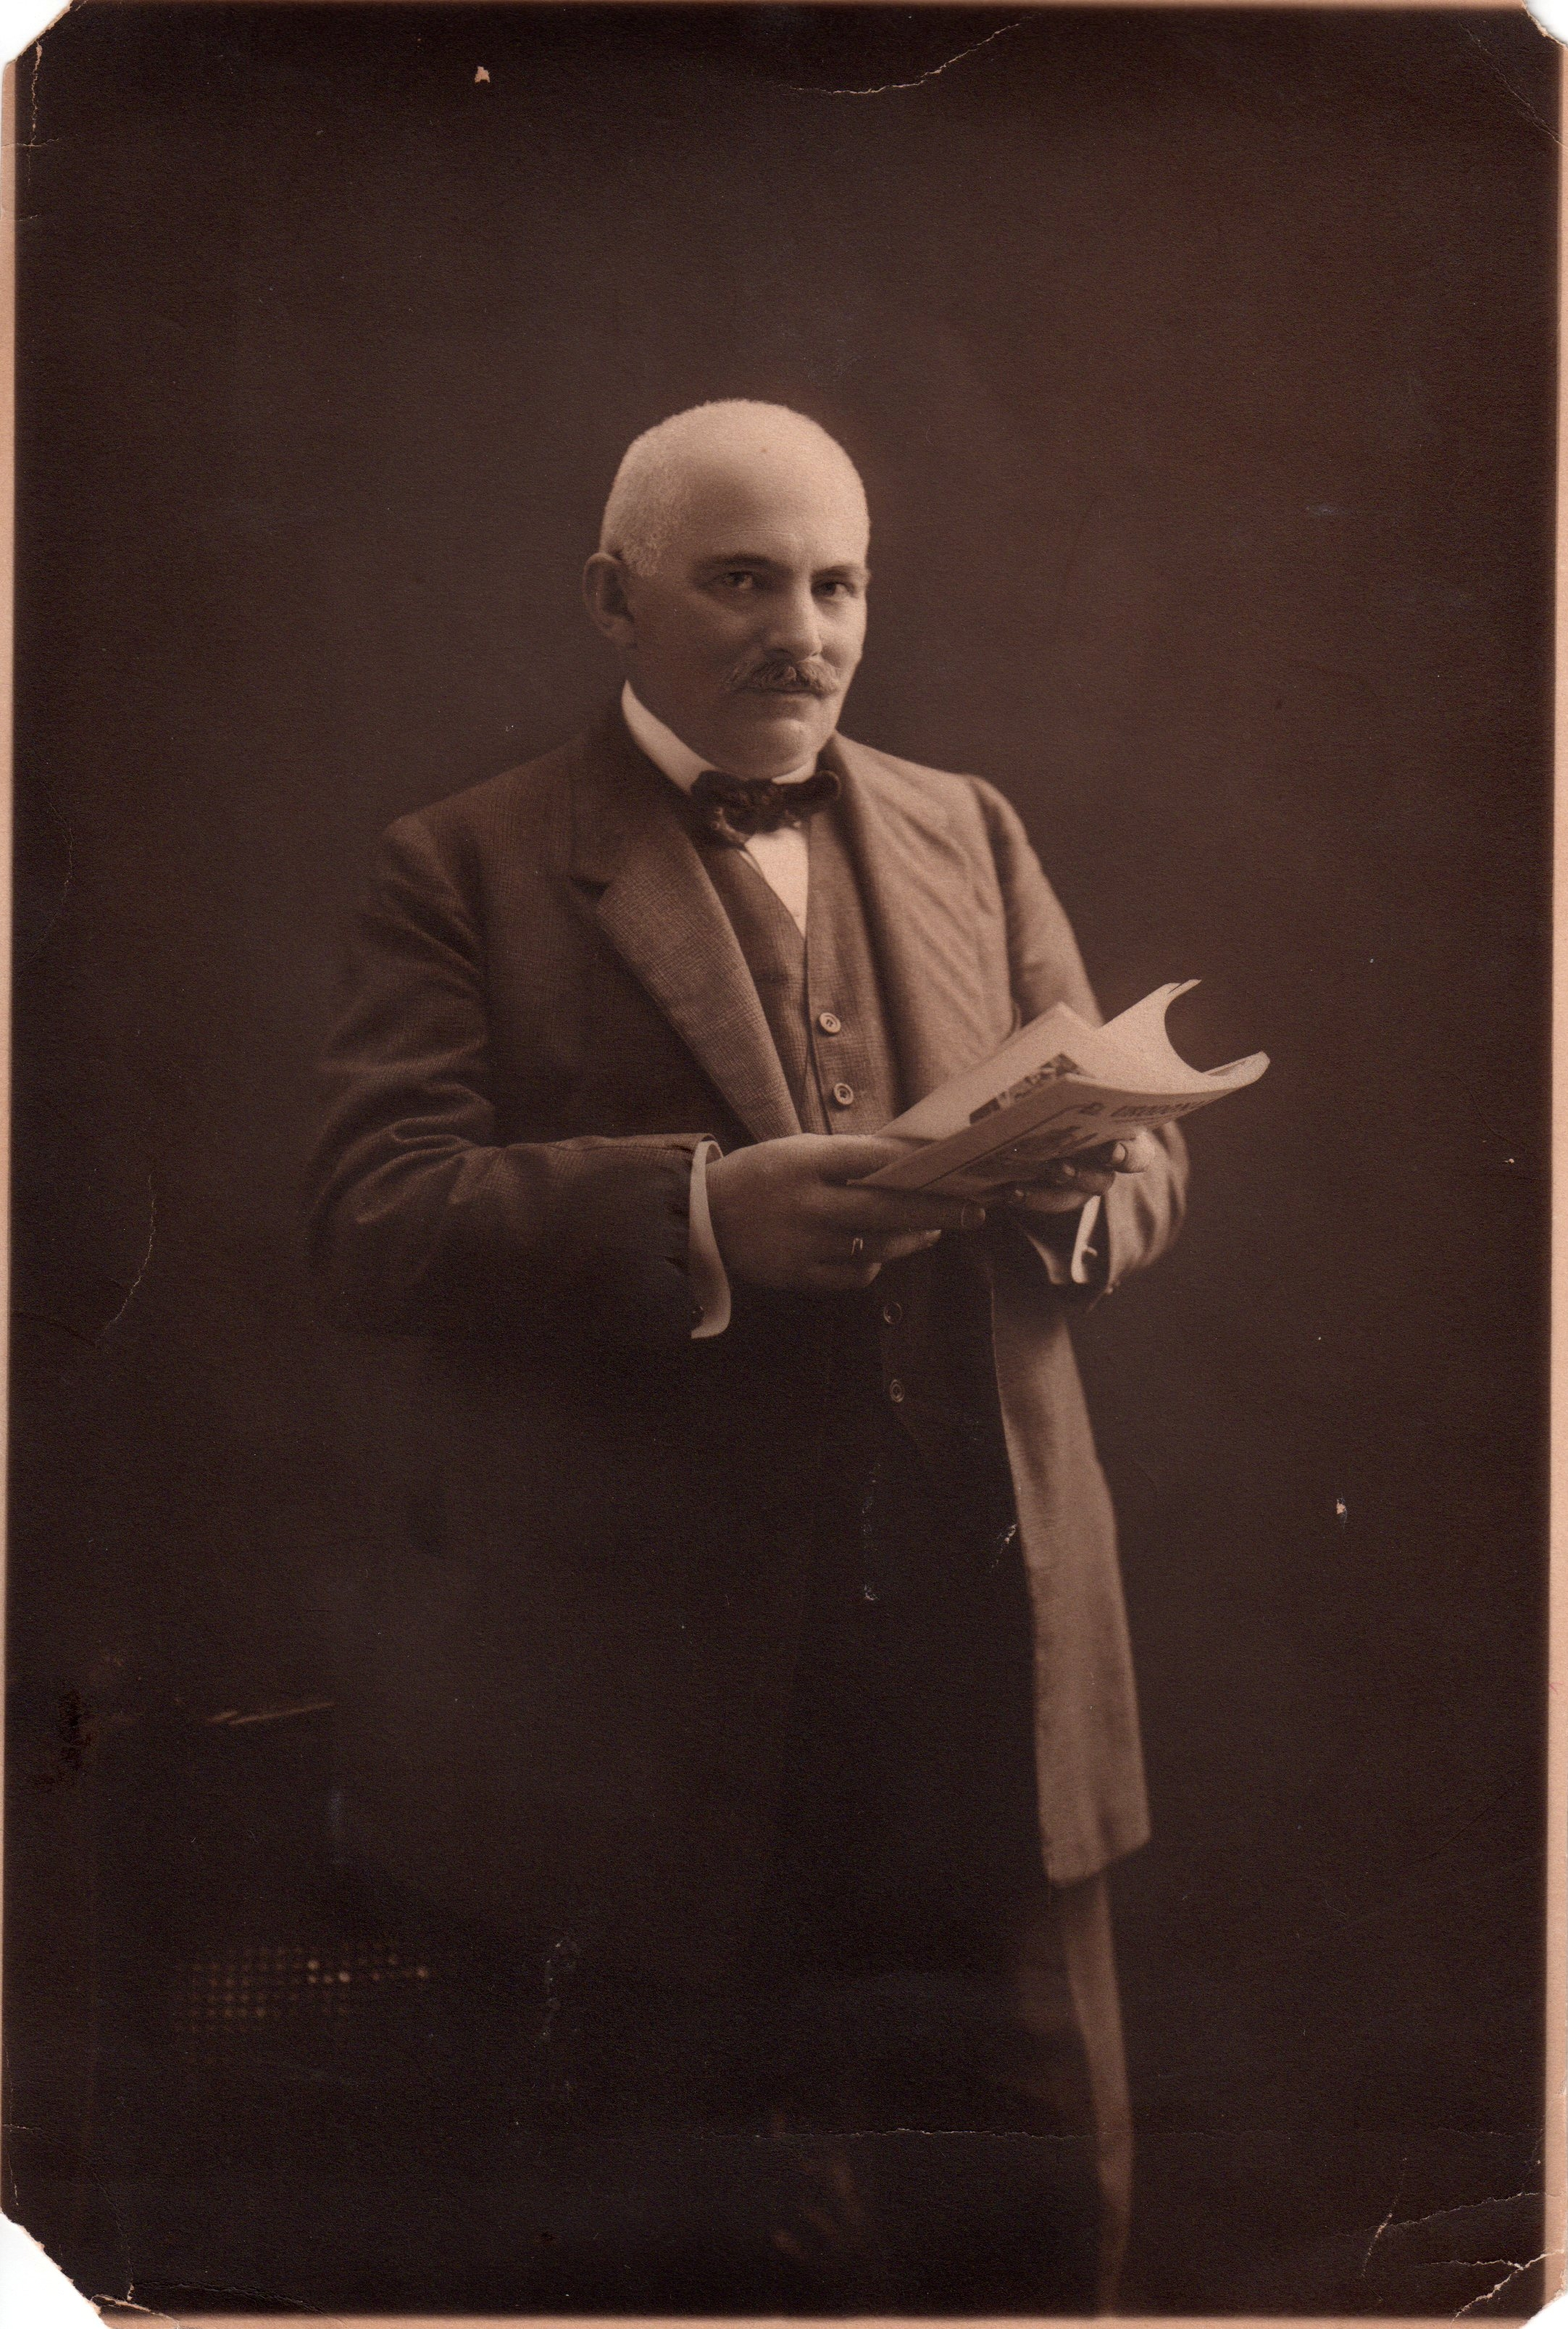 Arnold Bachwitz, founder of the Palais des Beaux Arts Wien, portrait from ca. 1915